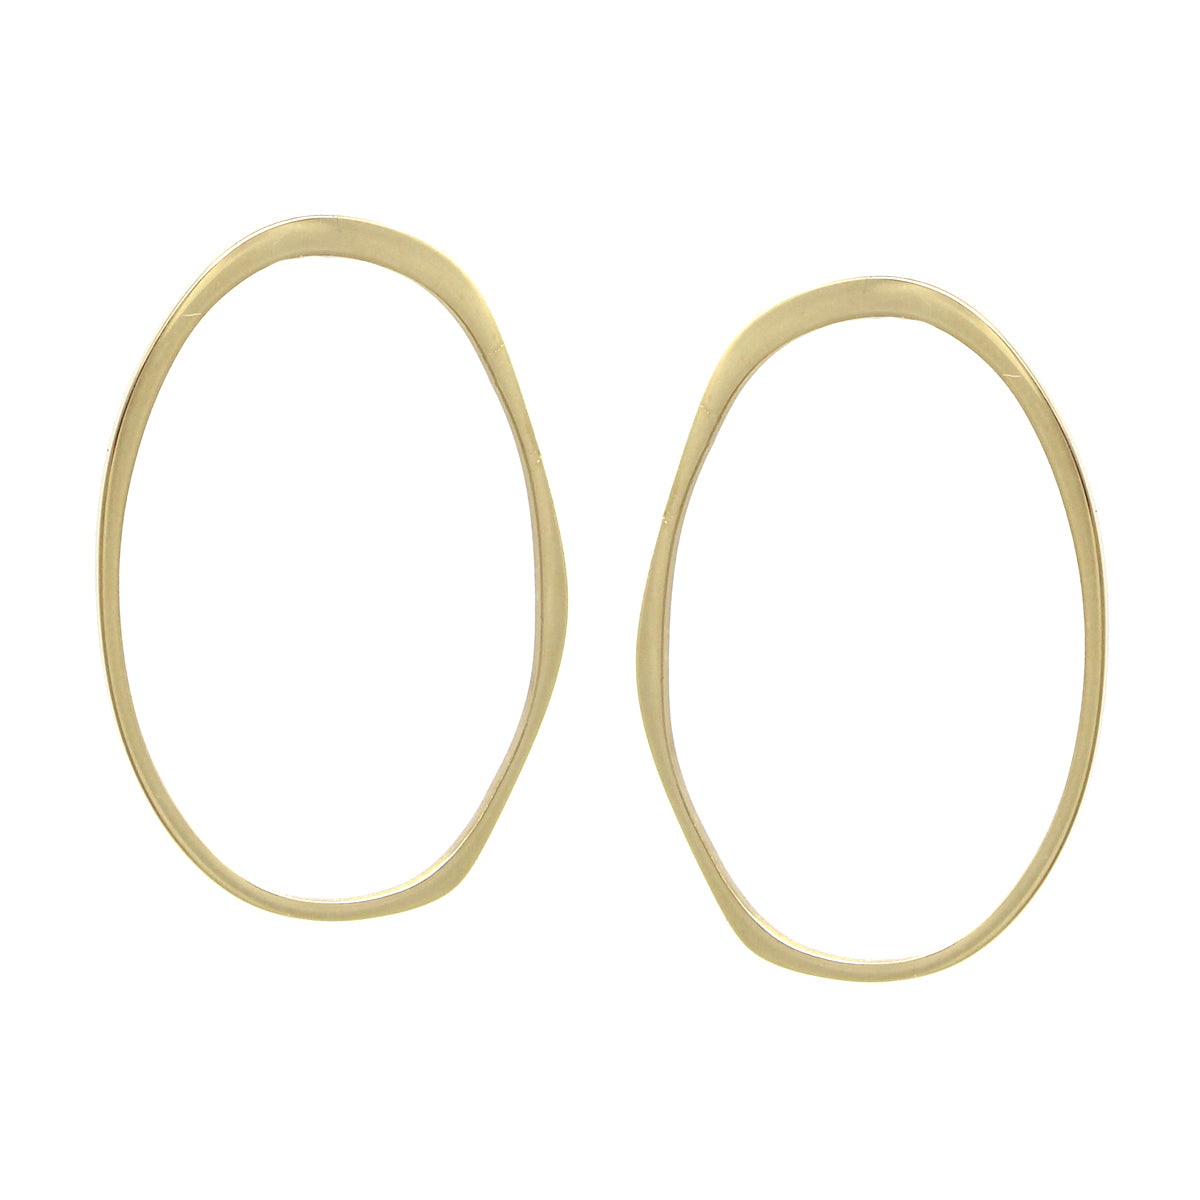 Stainless Steel Oval Shape Hoop Stud Earrings